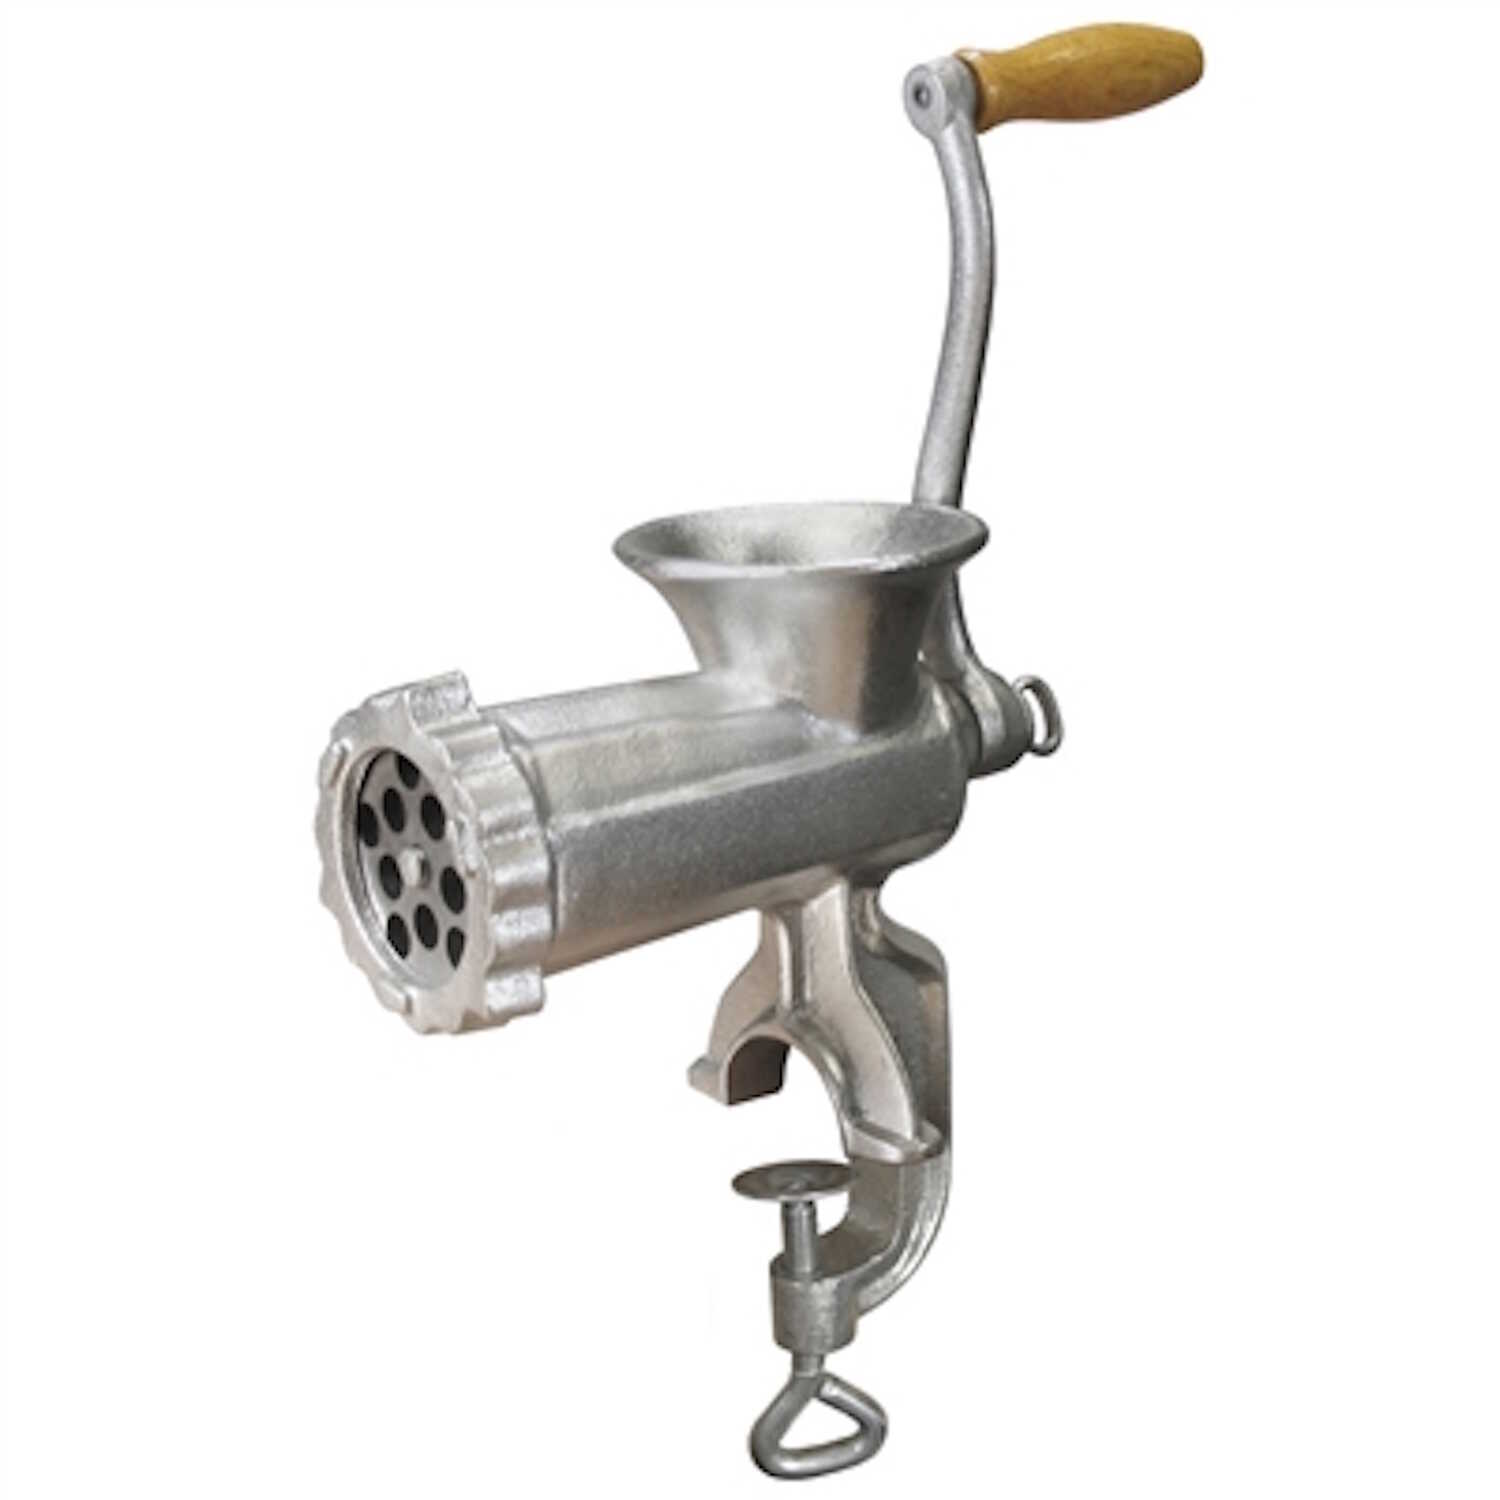 Weston  Electroplated Tin Coated  Silver  Manual speed Meat Grinder